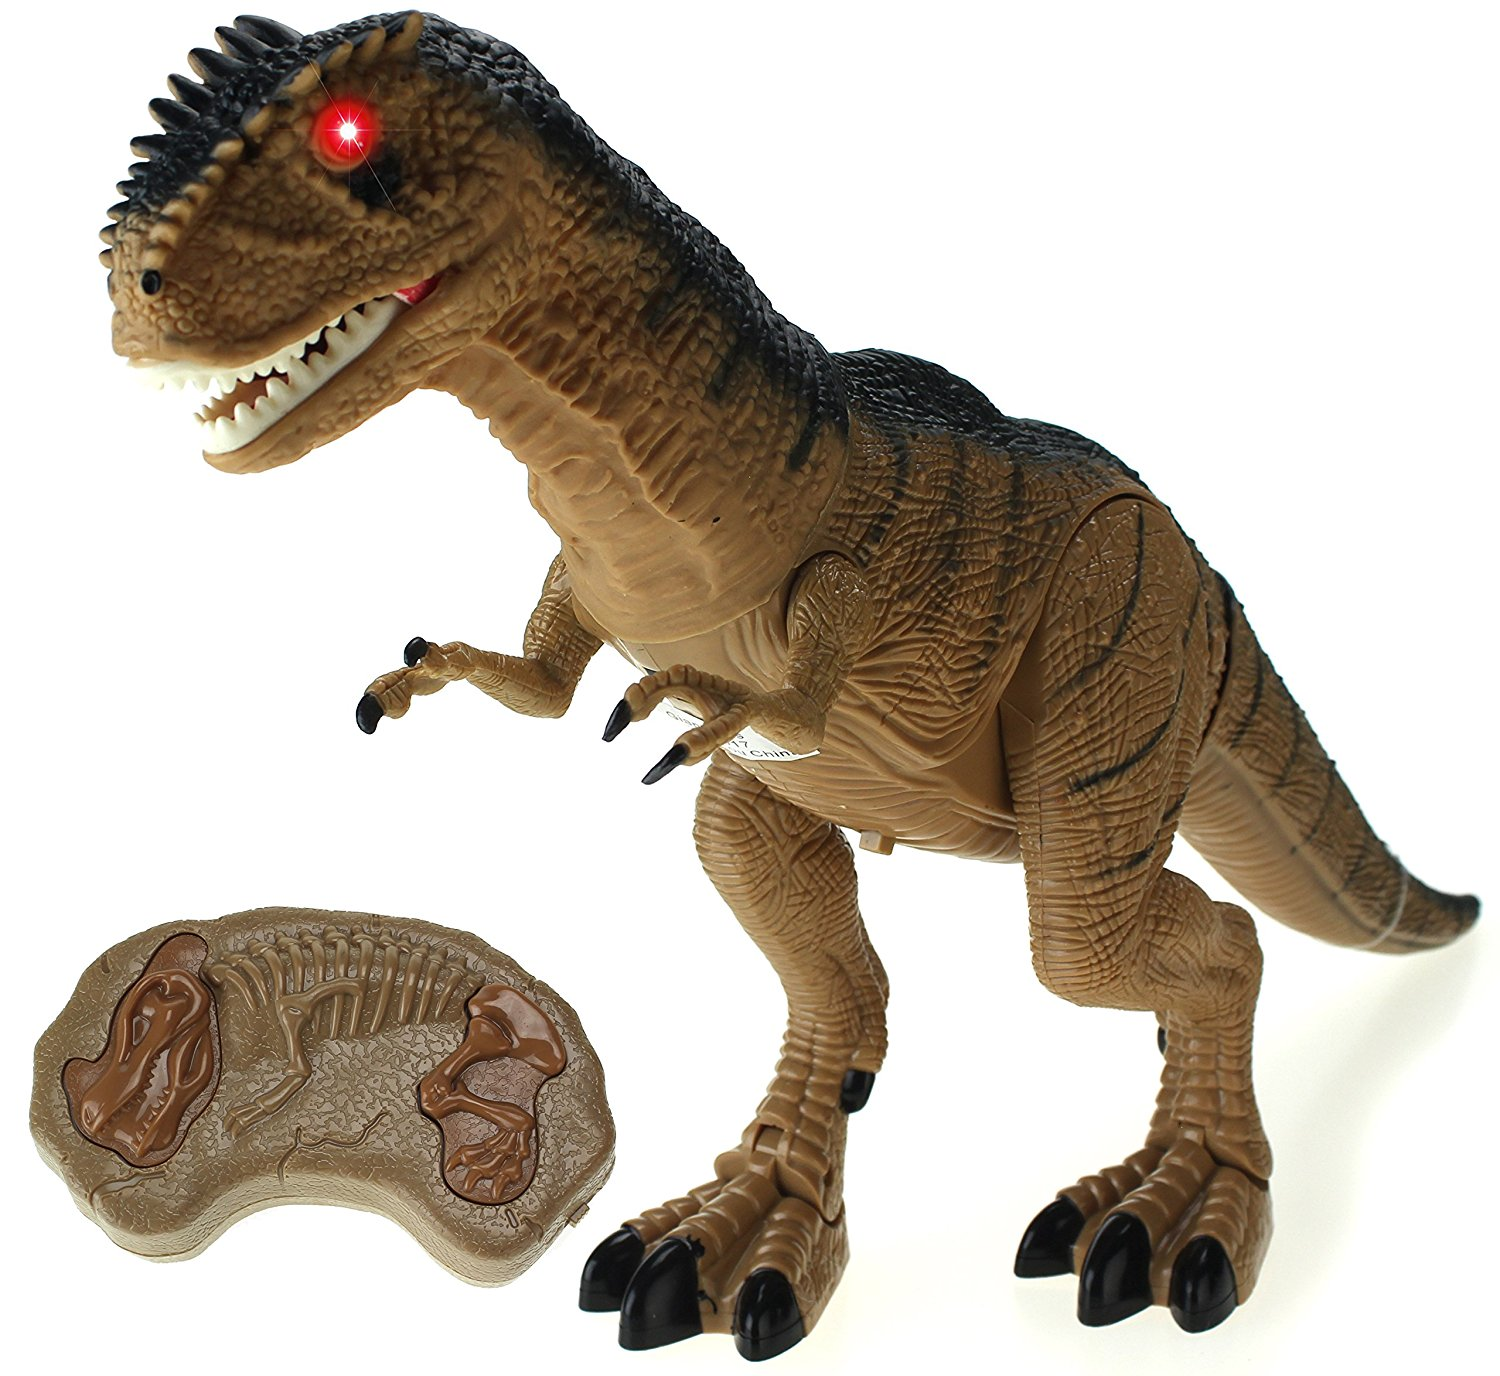 Dinosaur Planet Remote Controlled Battery Operated RC Toy Allosaurus Figure w/Shaking Head, Walking Movement, Light Up Eyes & Sounds